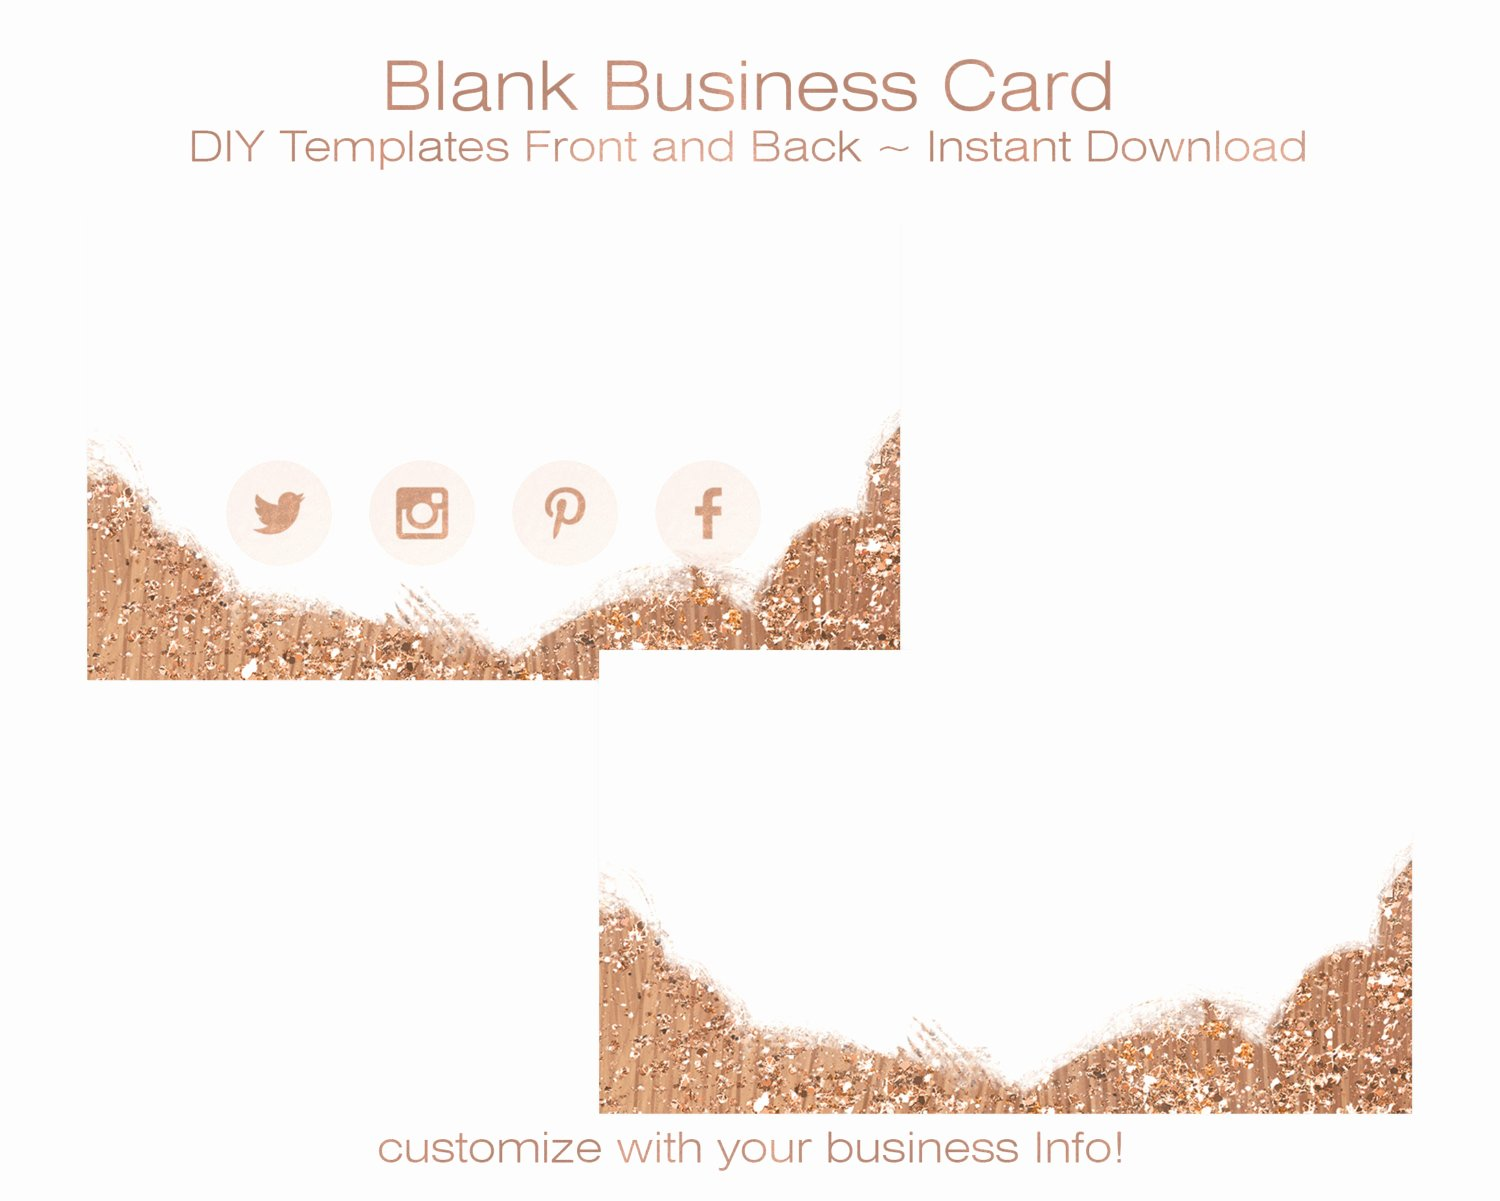 Business Card Template Blank Best Of Business Card Template Diy Blank Business Card Standard Size